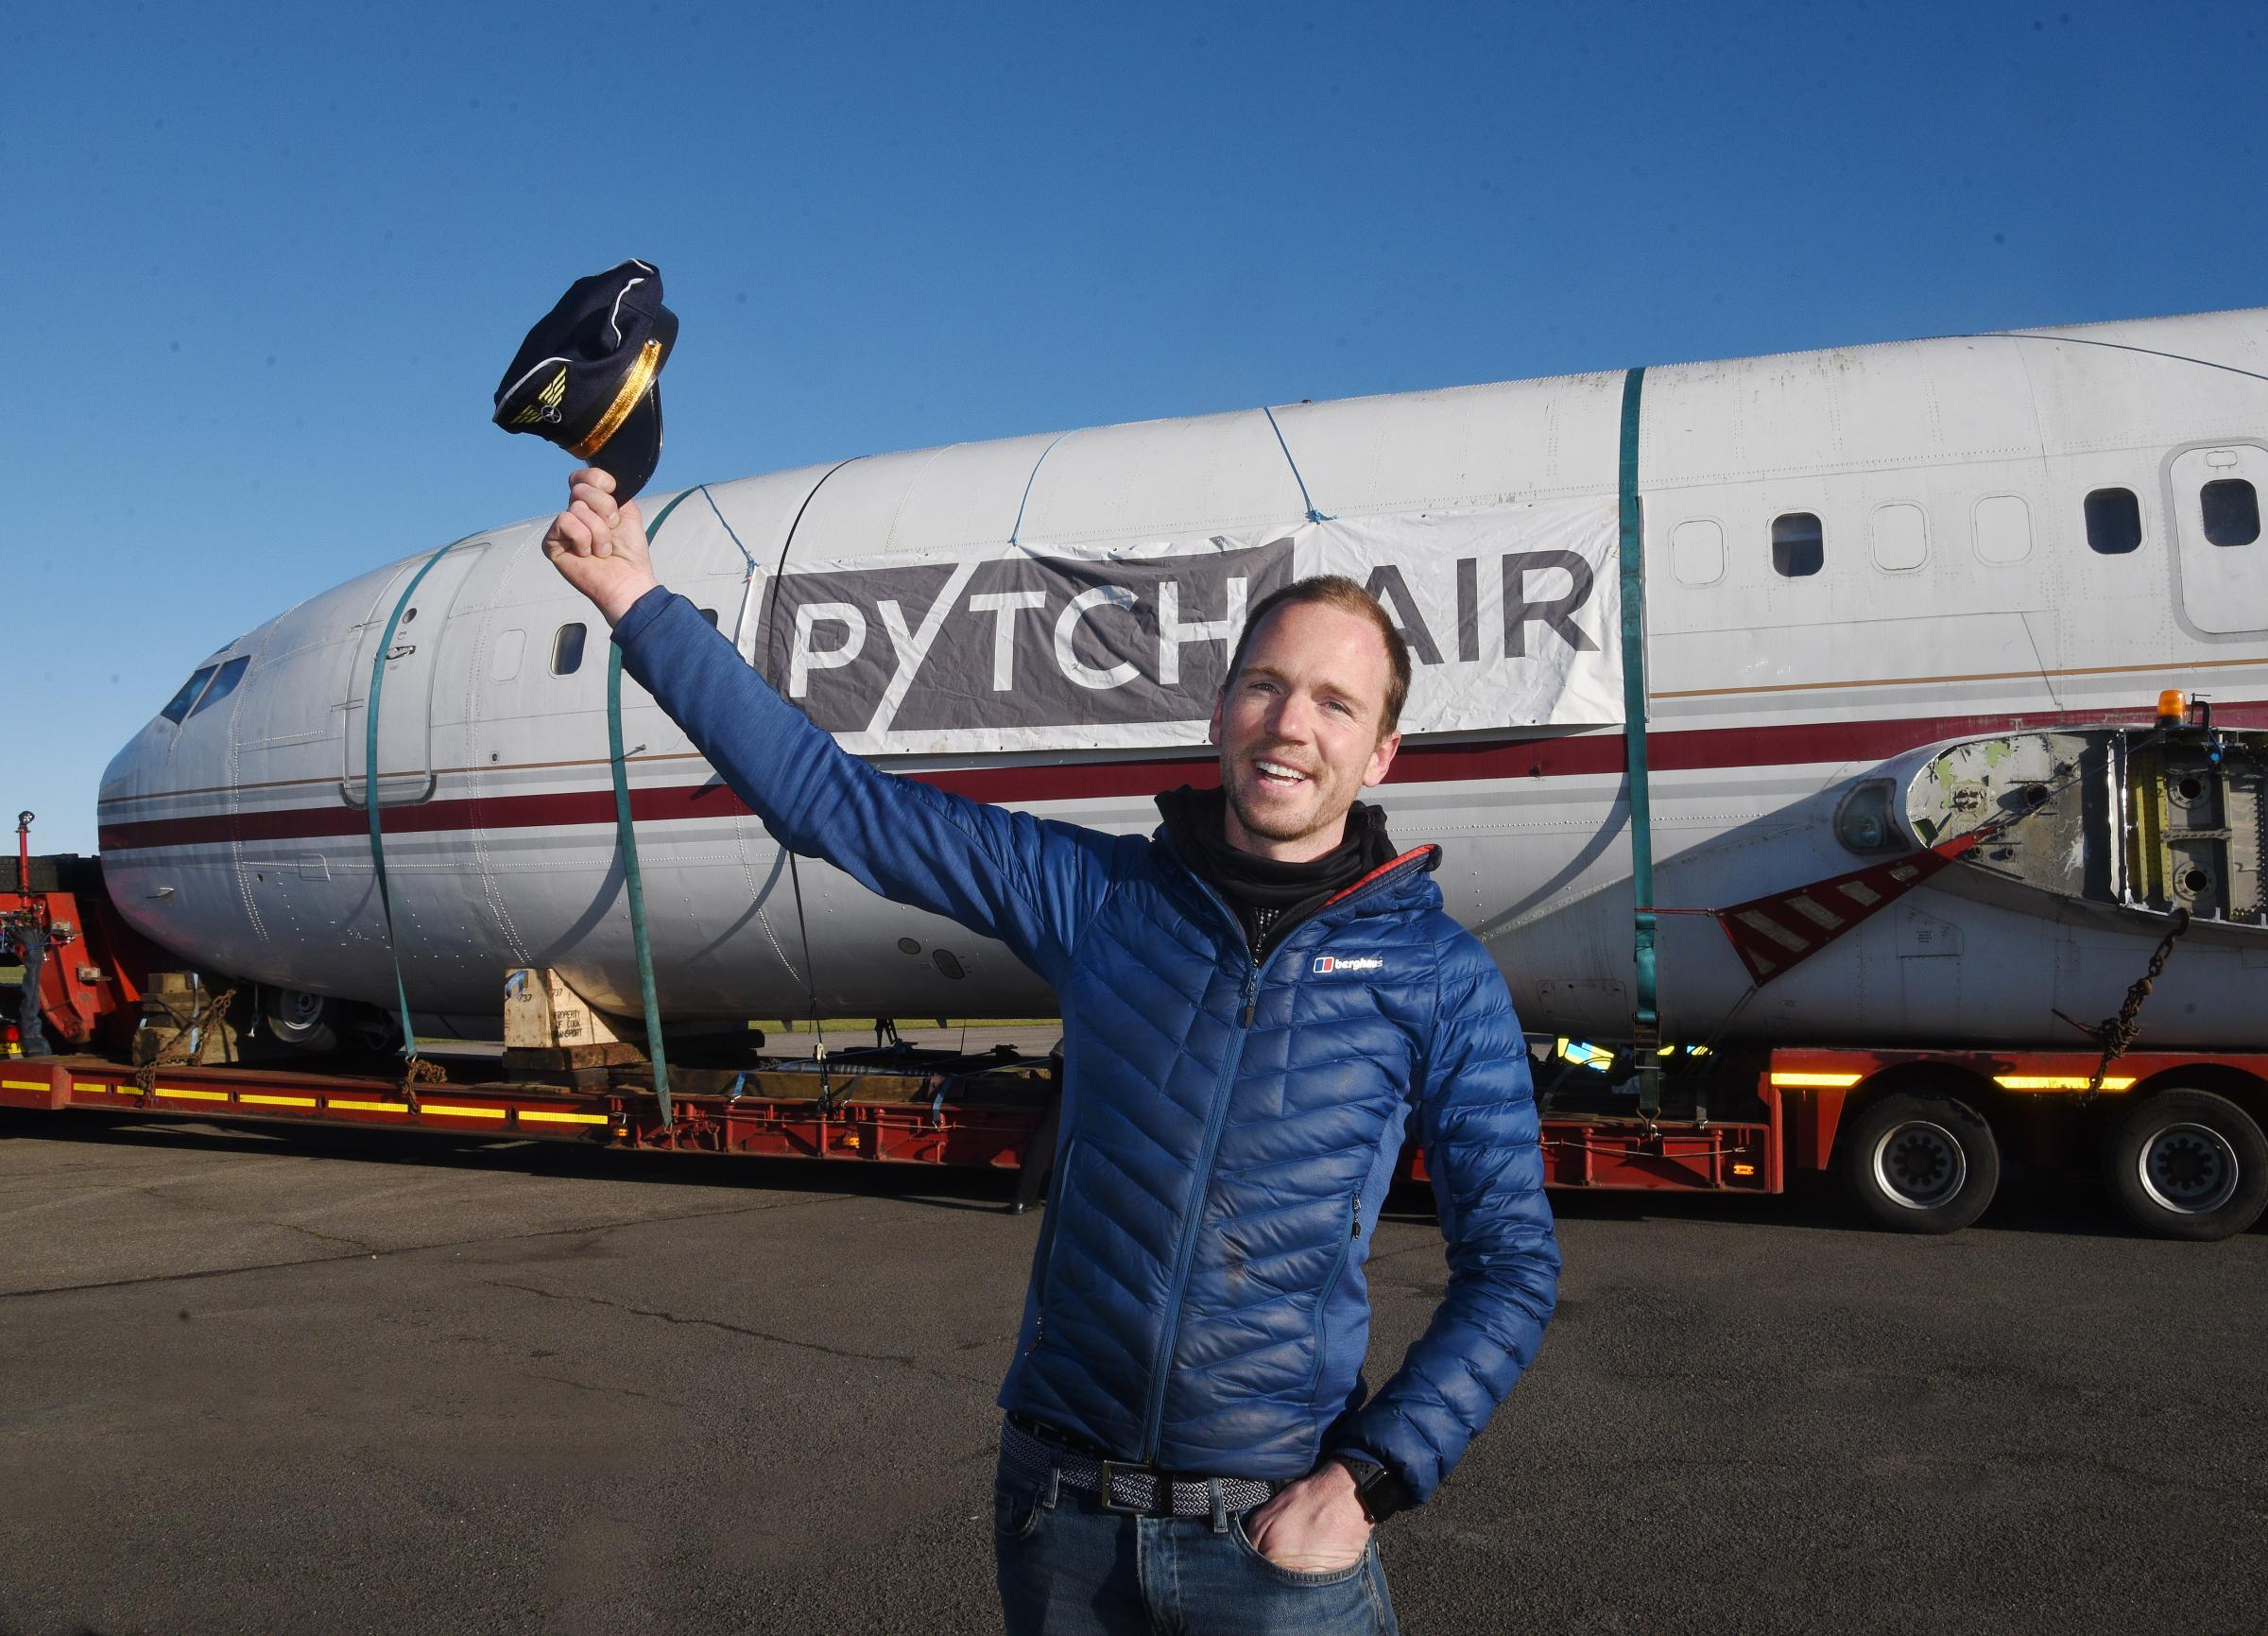 February 27 2021 PHOTOGRAPHER COPYRIGHT SIMON PIZZEY Johnny Palmer of Pytch Air Captains hat in the air PYTCH AIR Plane move from Kemble Cotswold Airport to Bristol